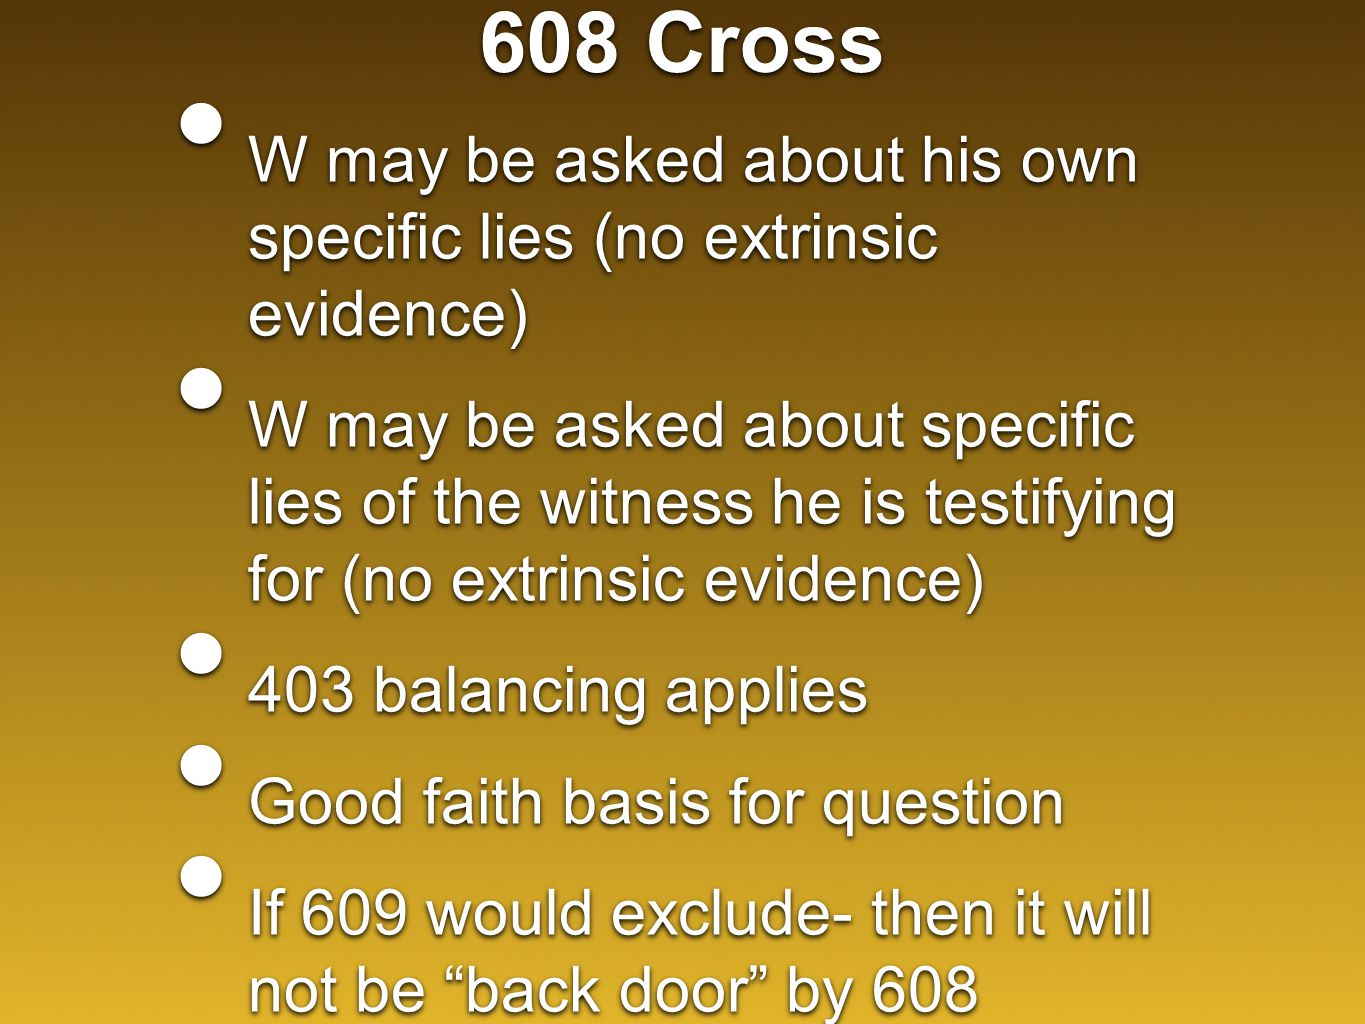 608 Cross W may be asked about his own specific lies (no extrinsic evidence) W may be asked about specific lies of the witness he is testifying for (no extrinsic evidence) 403 balancing applies Good faith basis for question If 609 would exclude- then it will not be back door by 608 W may be asked about his own specific lies (no extrinsic evidence) W may be asked about specific lies of the witness he is testifying for (no extrinsic evidence) 403 balancing applies Good faith basis for question If 609 would exclude- then it will not be back door by 608